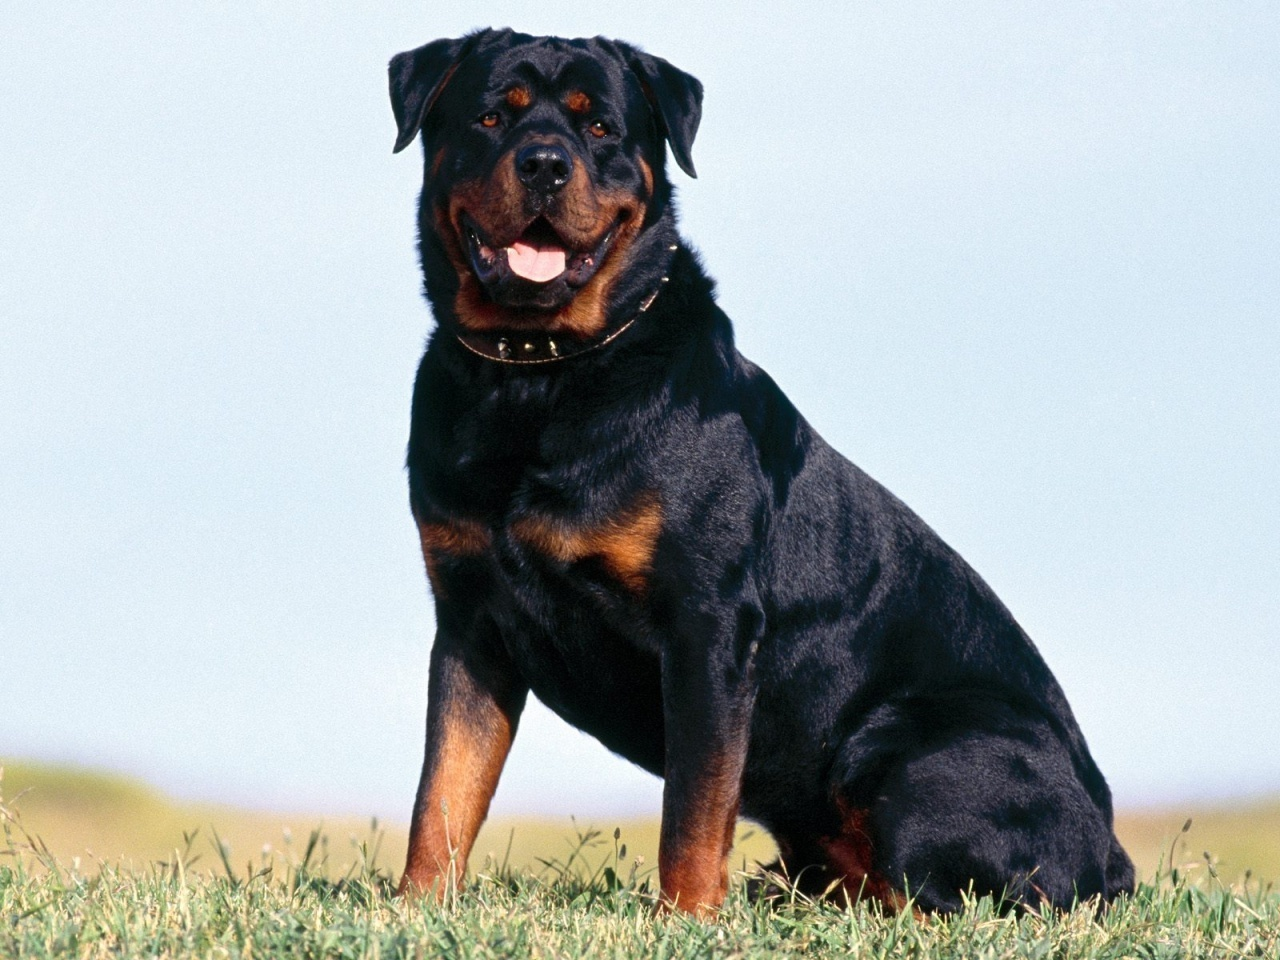 Lovely Rottweiler dog wallpaper